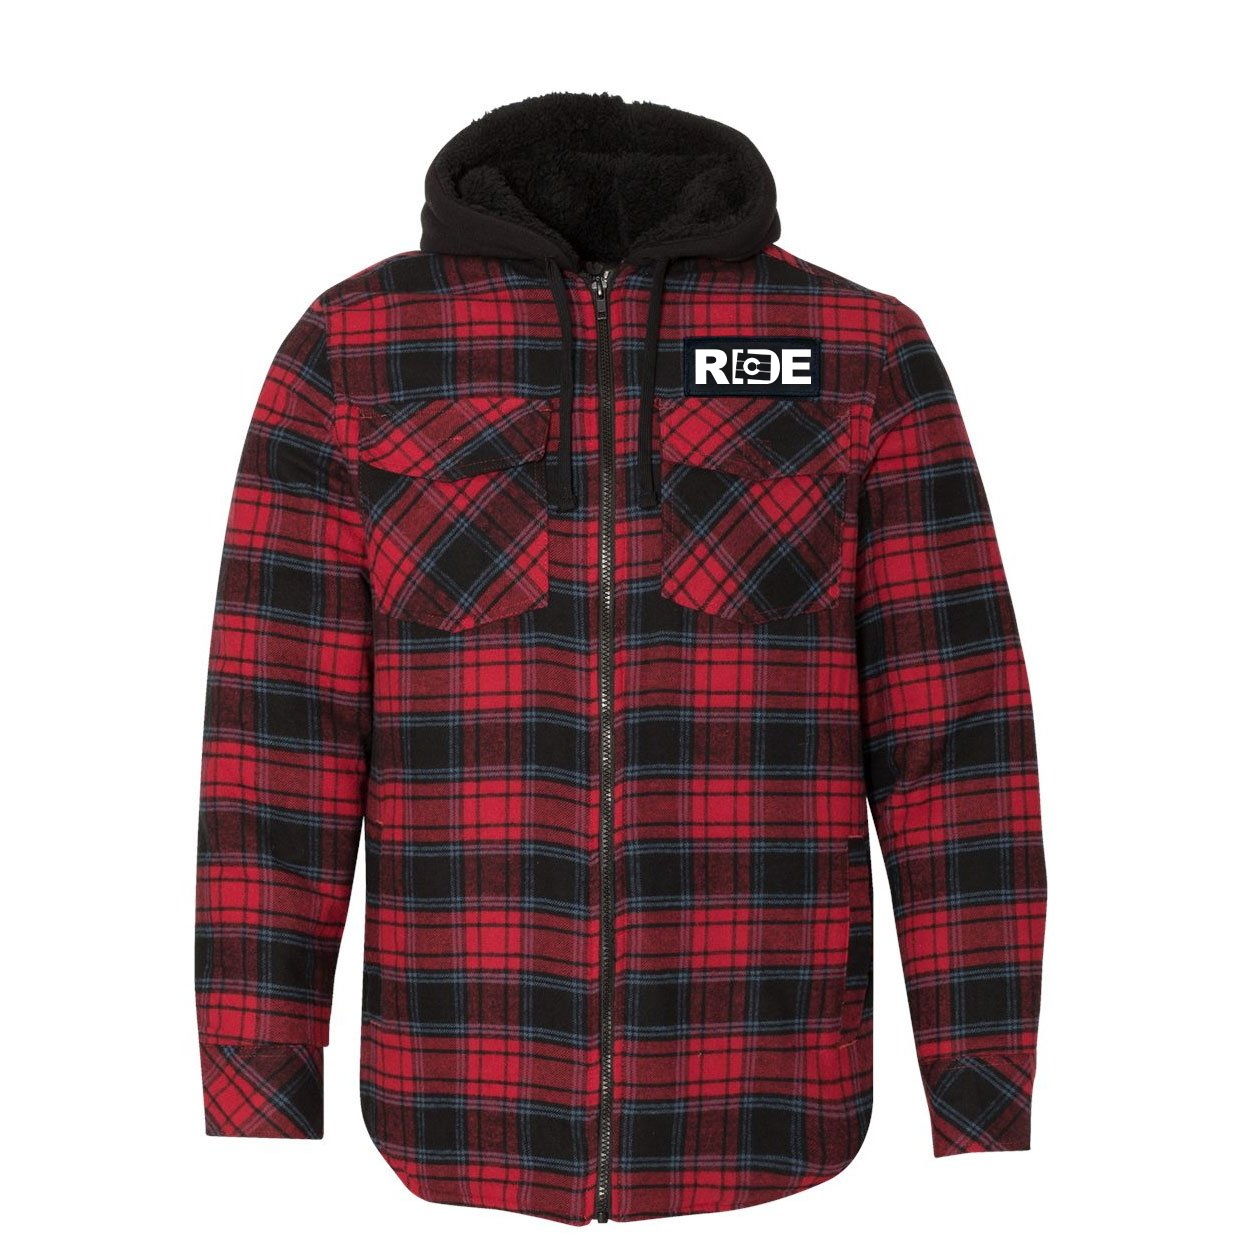 Ride Colorado Classic Unisex Full Zip Woven Patch Hooded Flannel Jacket Red/Black Buffalo (White Logo)